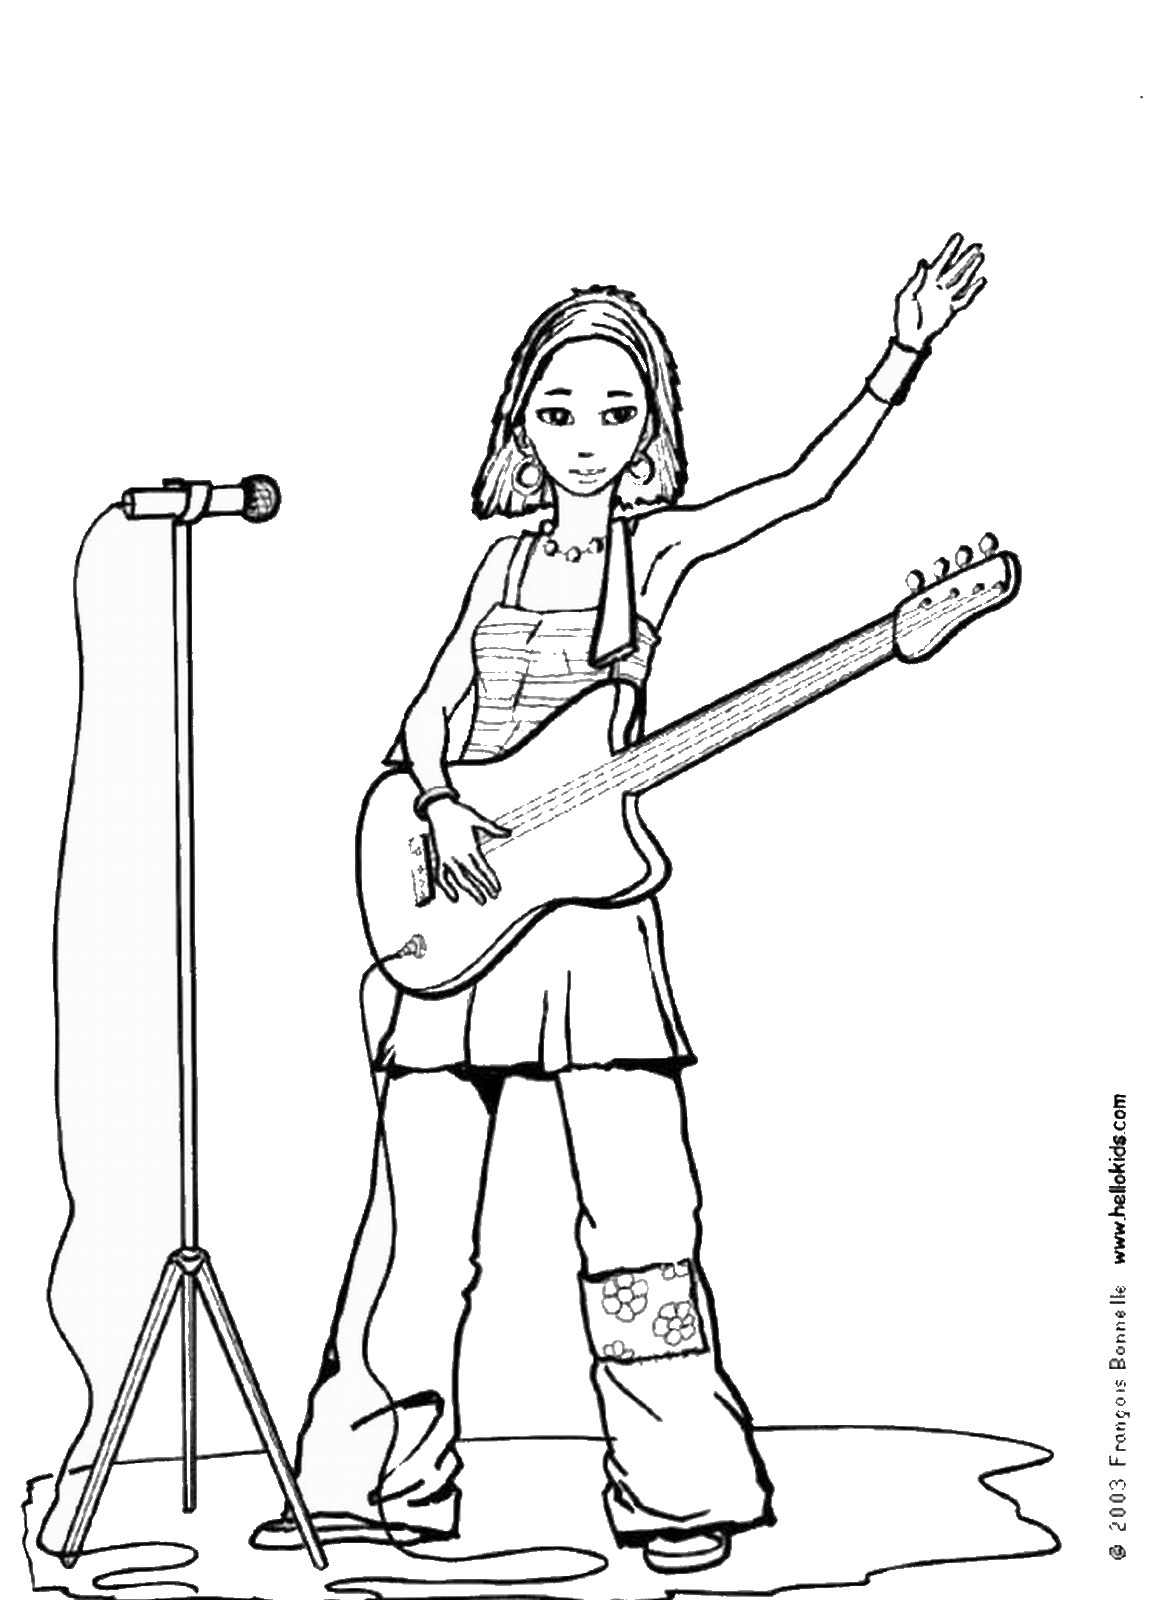 american idol coloring pages - photo#6